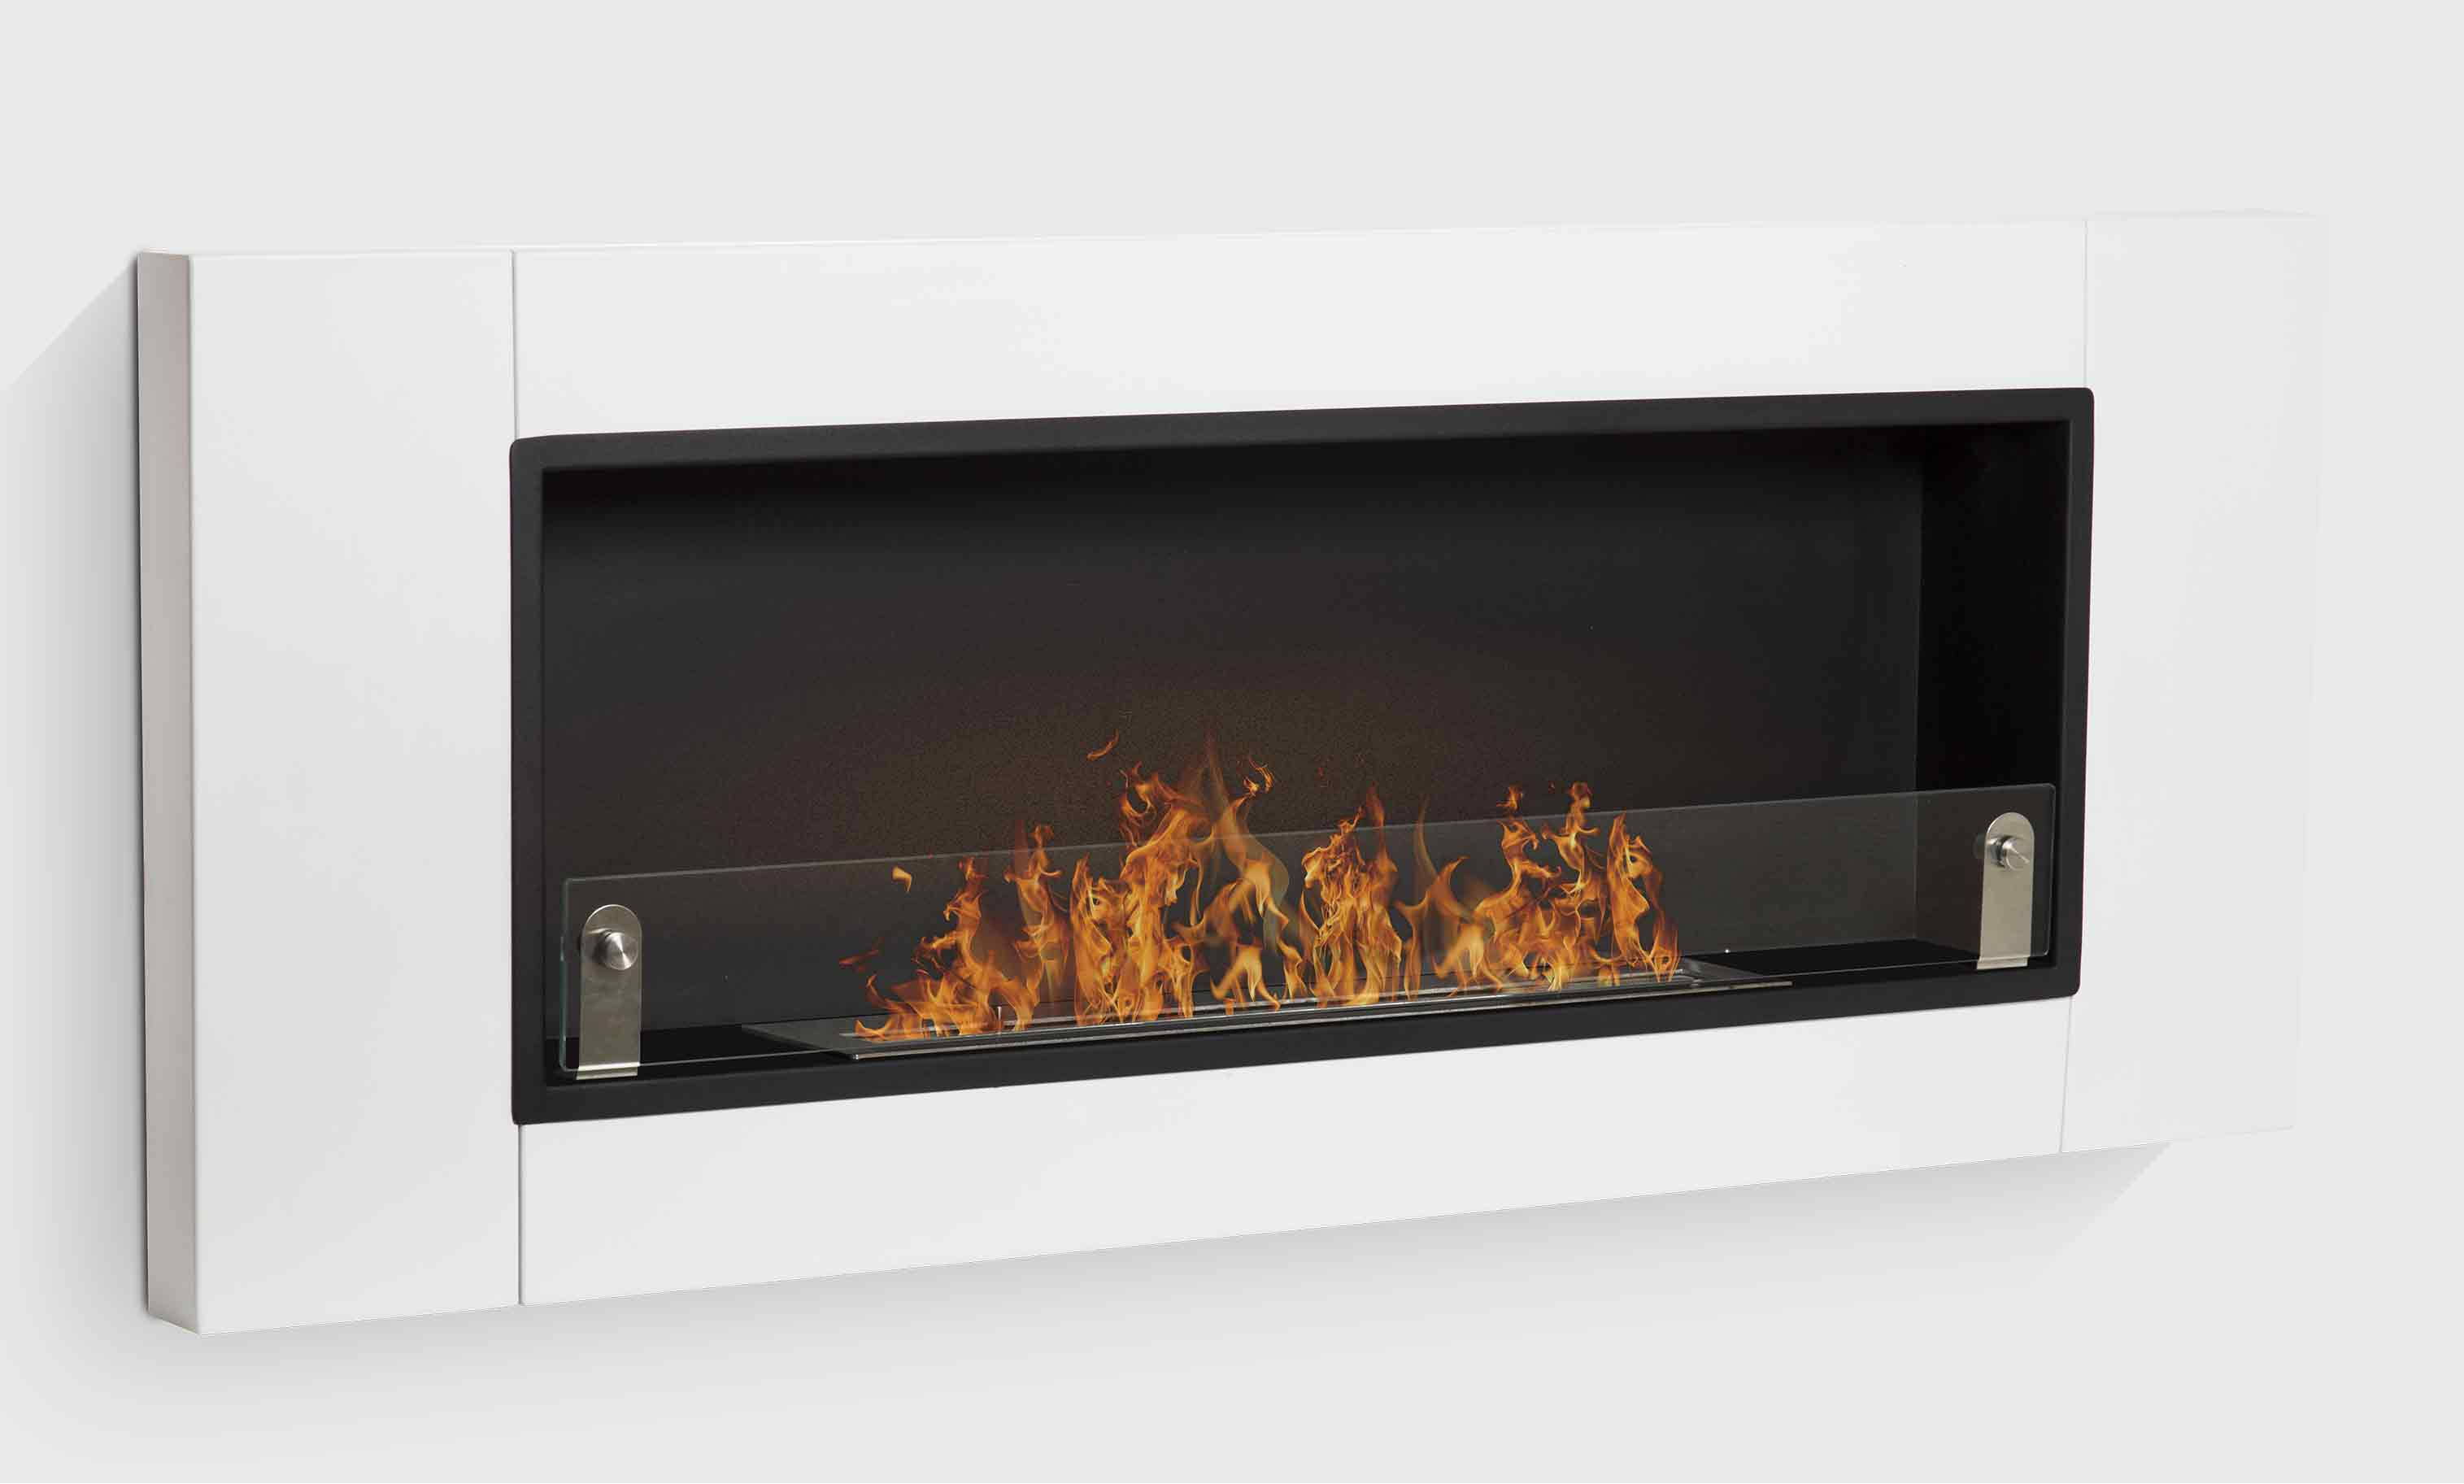 Cheminee Ethanol Chauffage D'appoint Chauffage Mural D 39appoint 3 Brûleurs Cynthera 8100 Watts